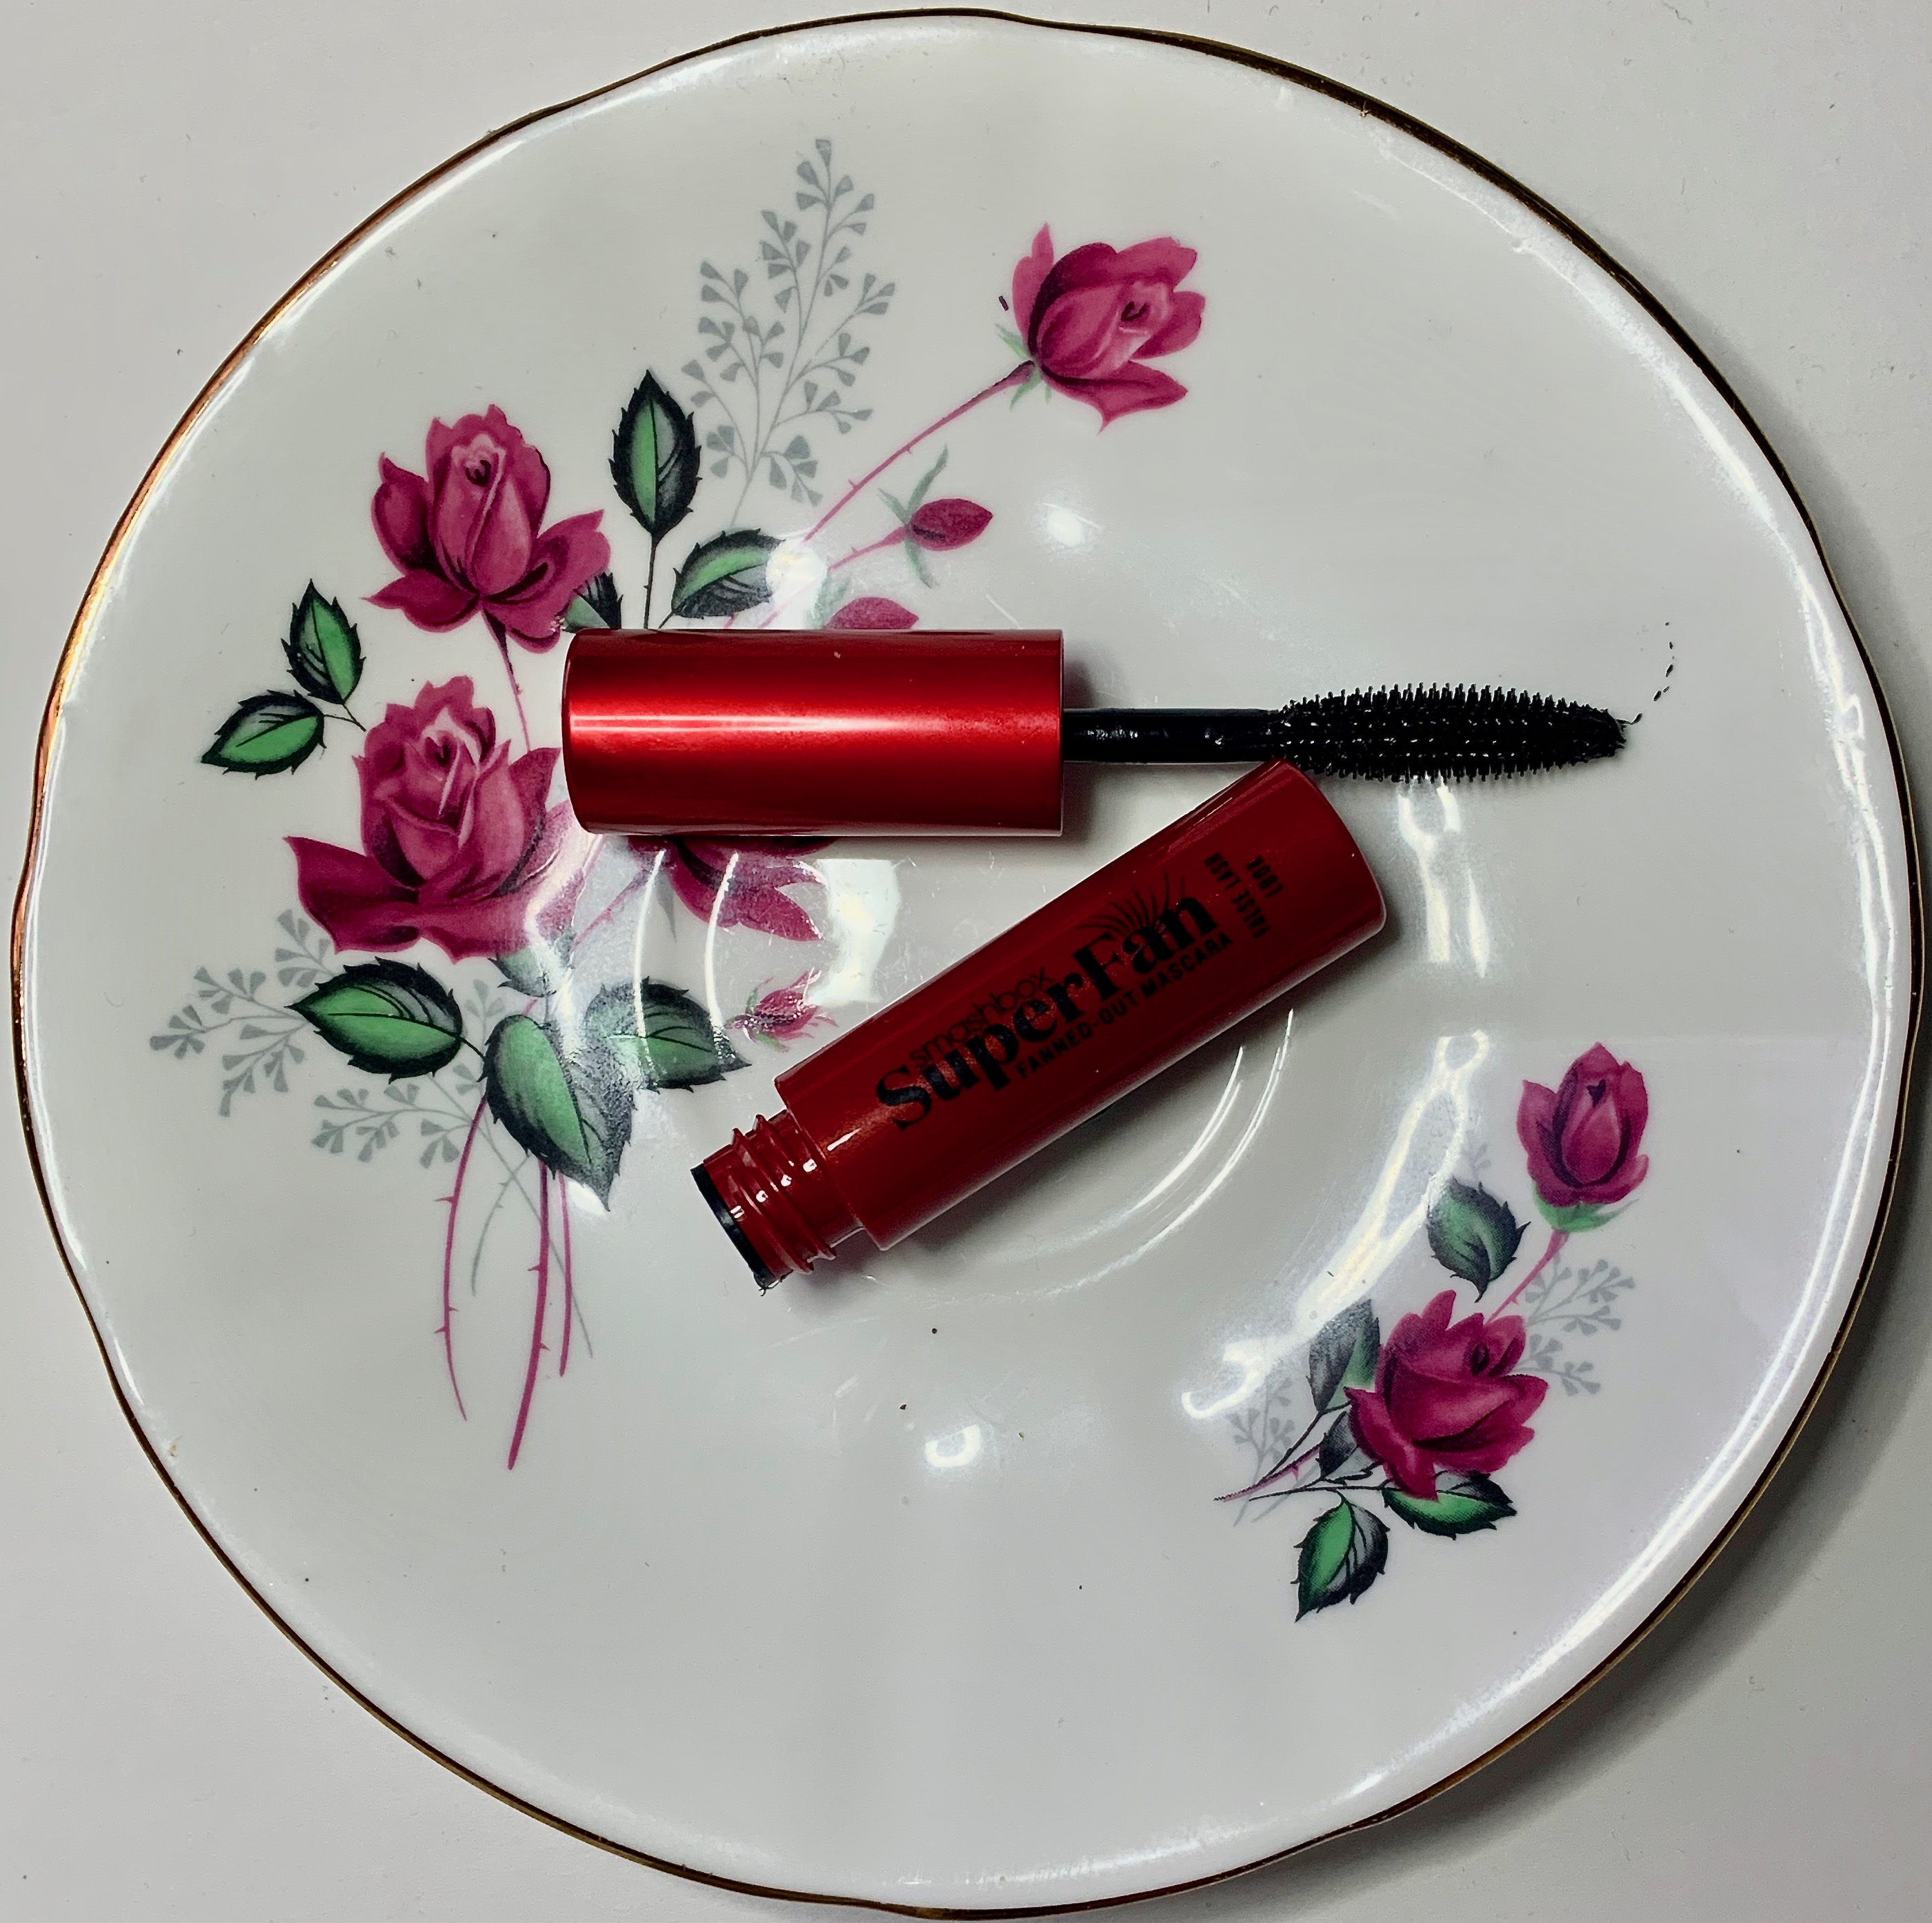 Smashbox Super Fan Mascara